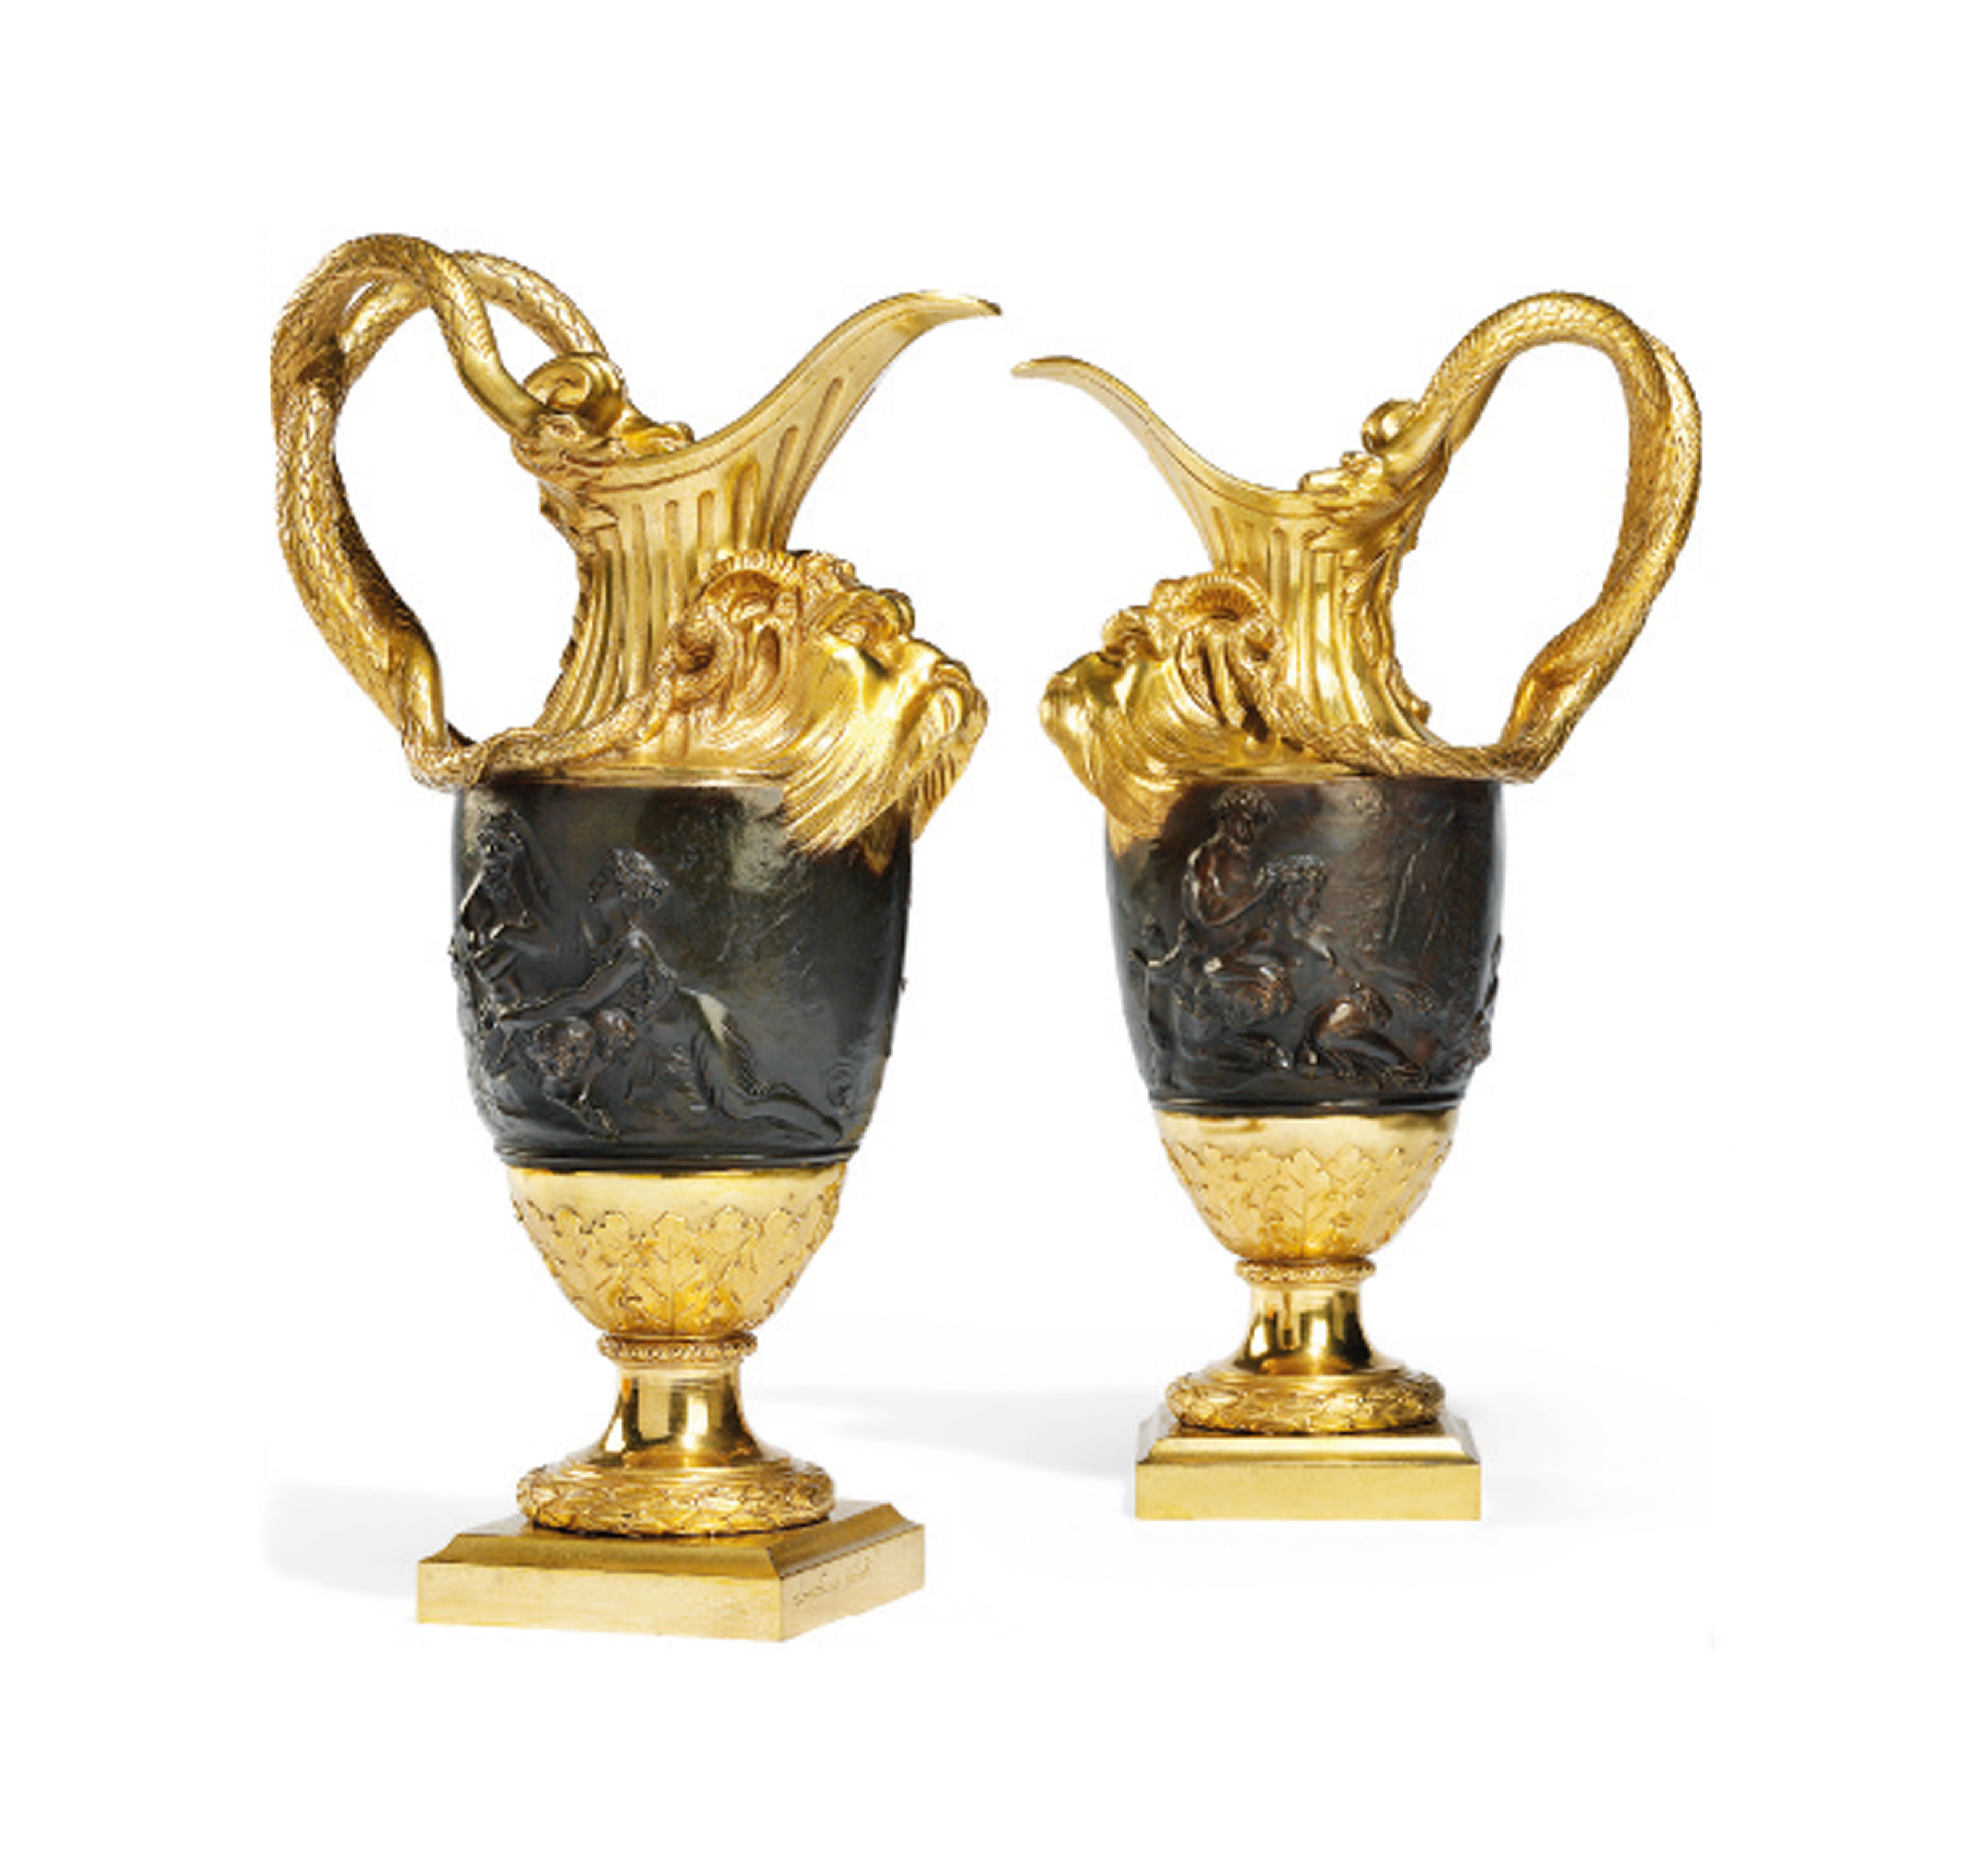 A PAIR OF FRENCH GILT AND PATINATED BRONZE EWERS